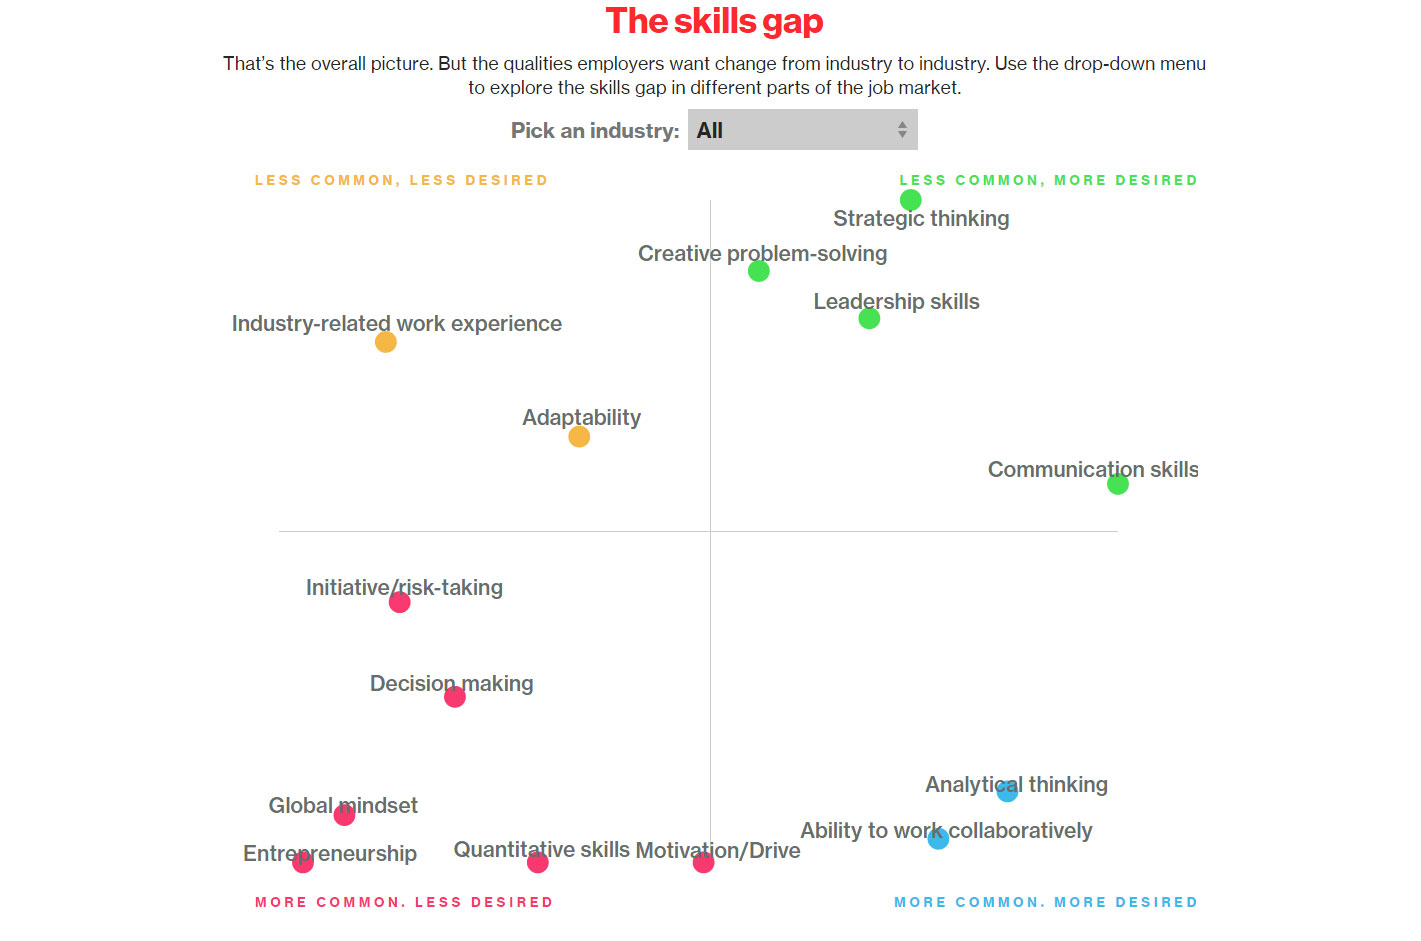 Bloomberg skills gap